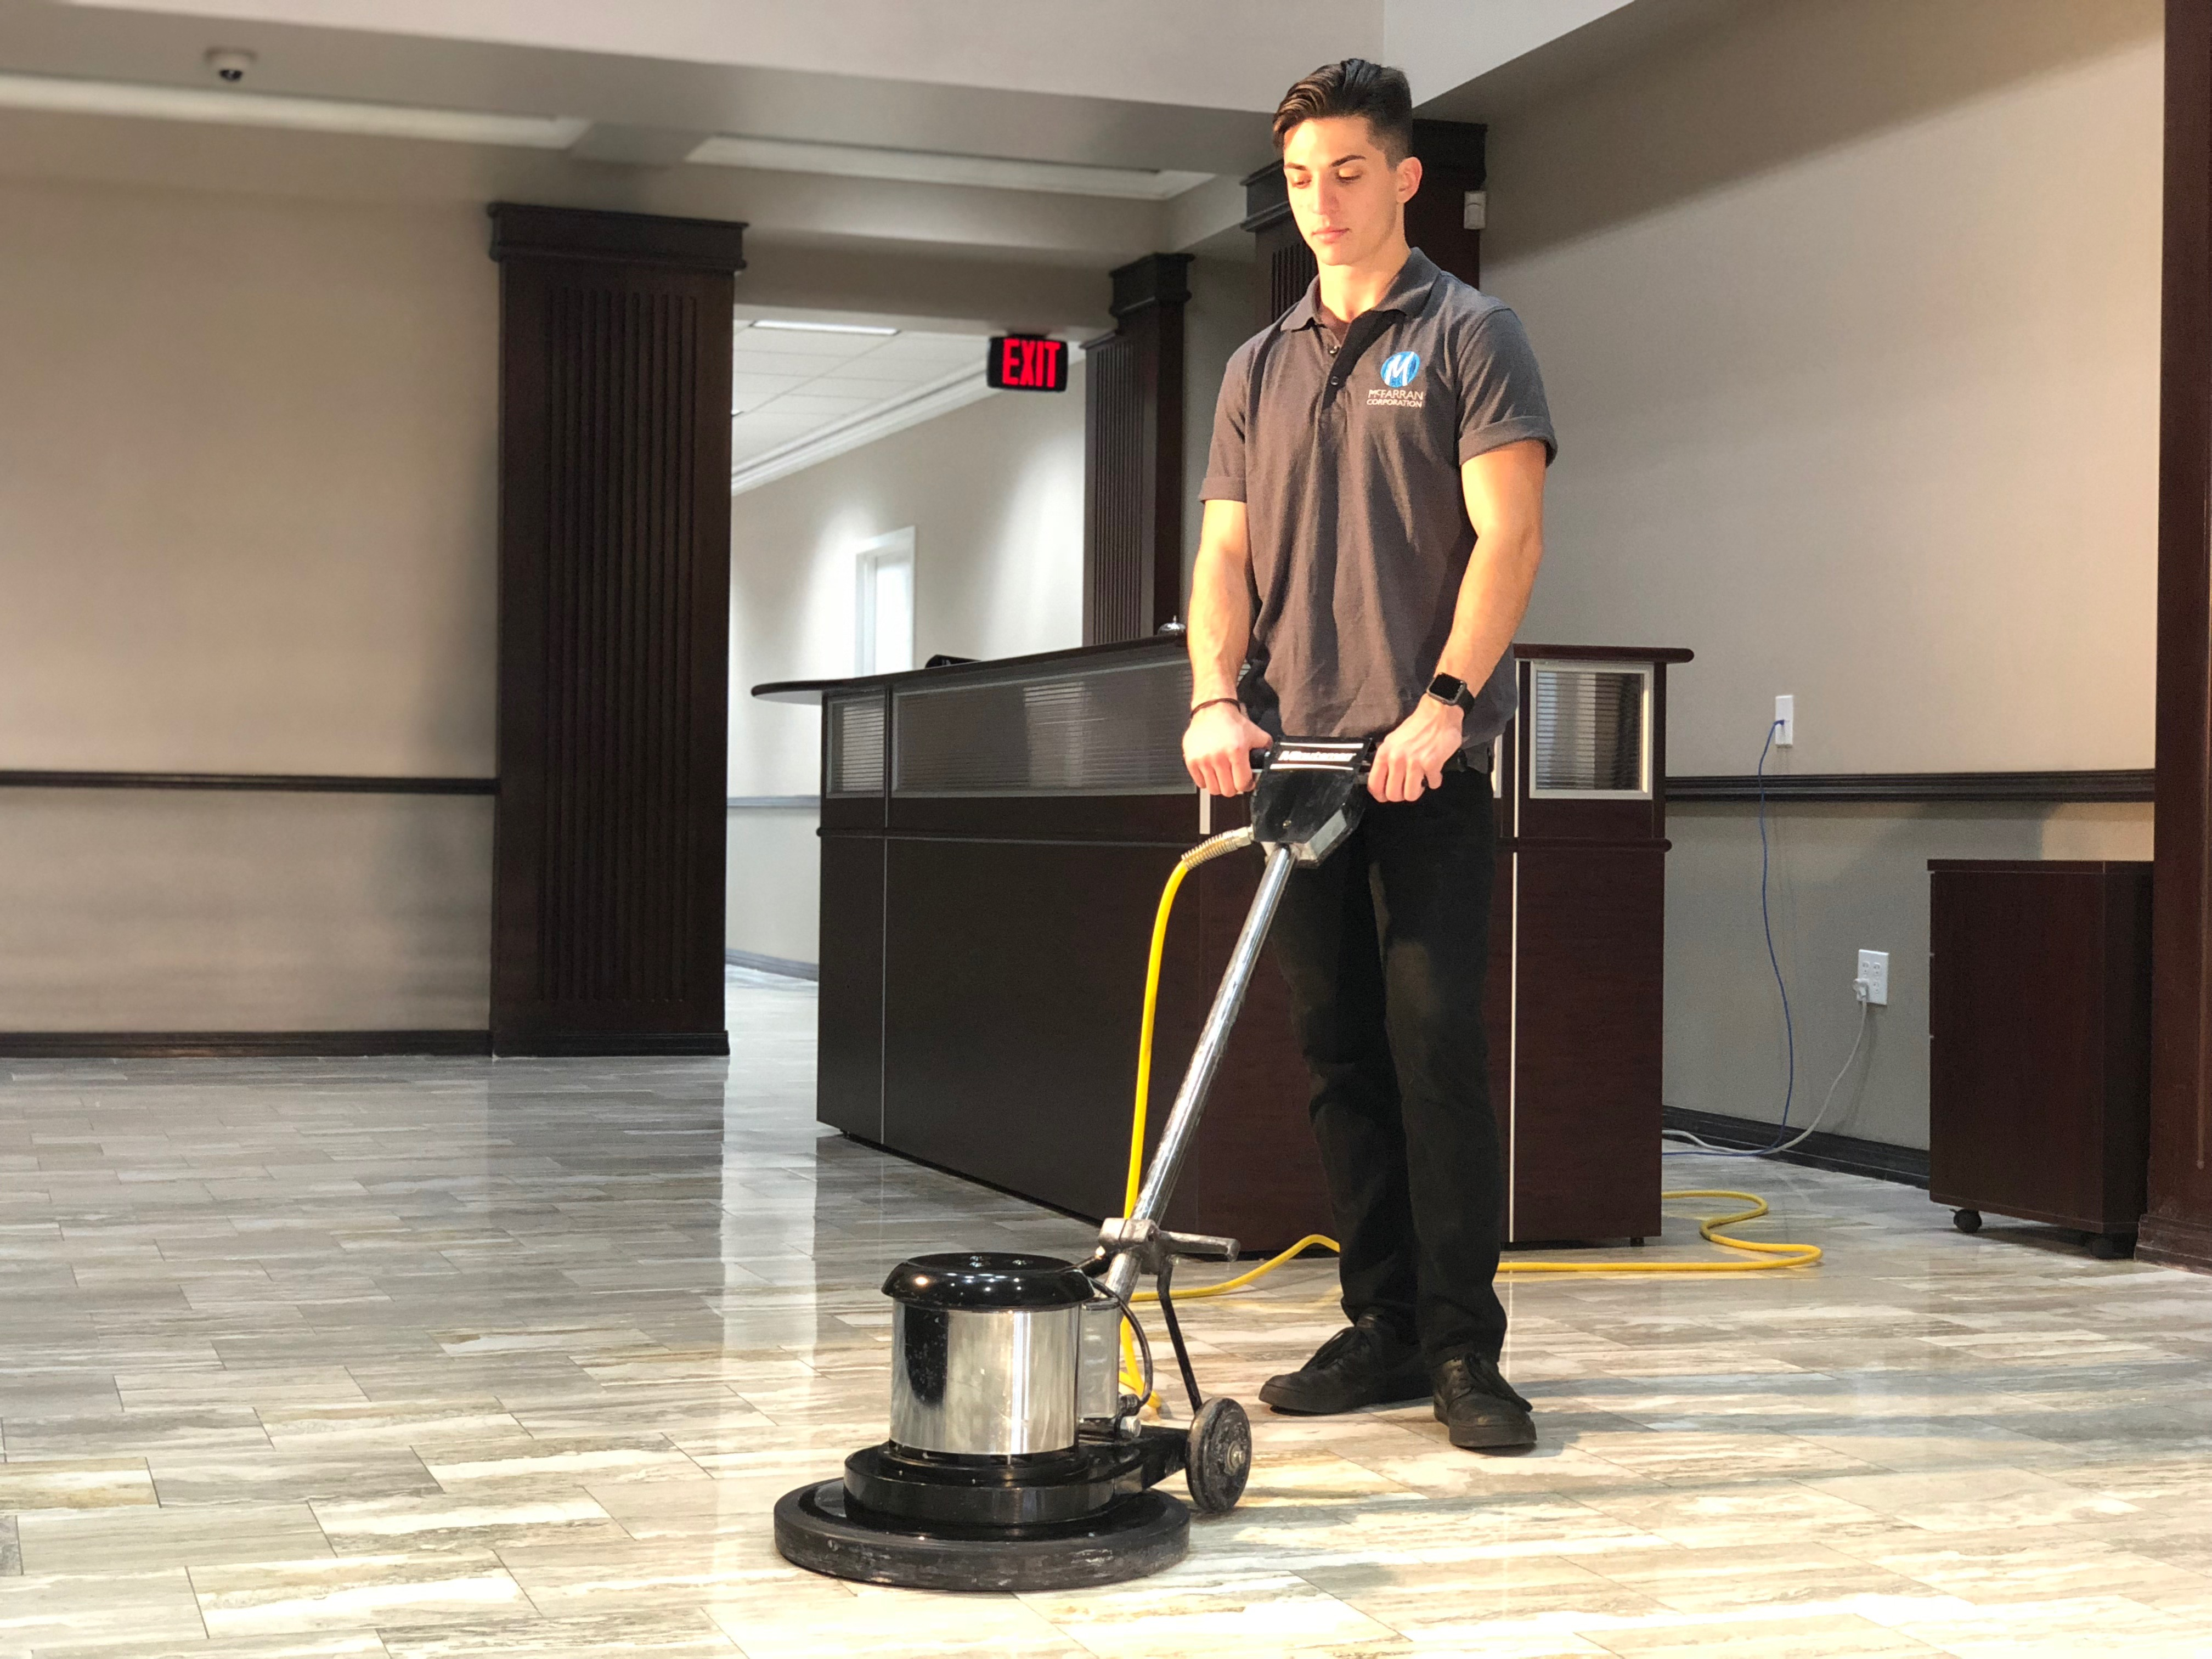 McFarran-commercial-floor-cleaning New Smyrna Beach